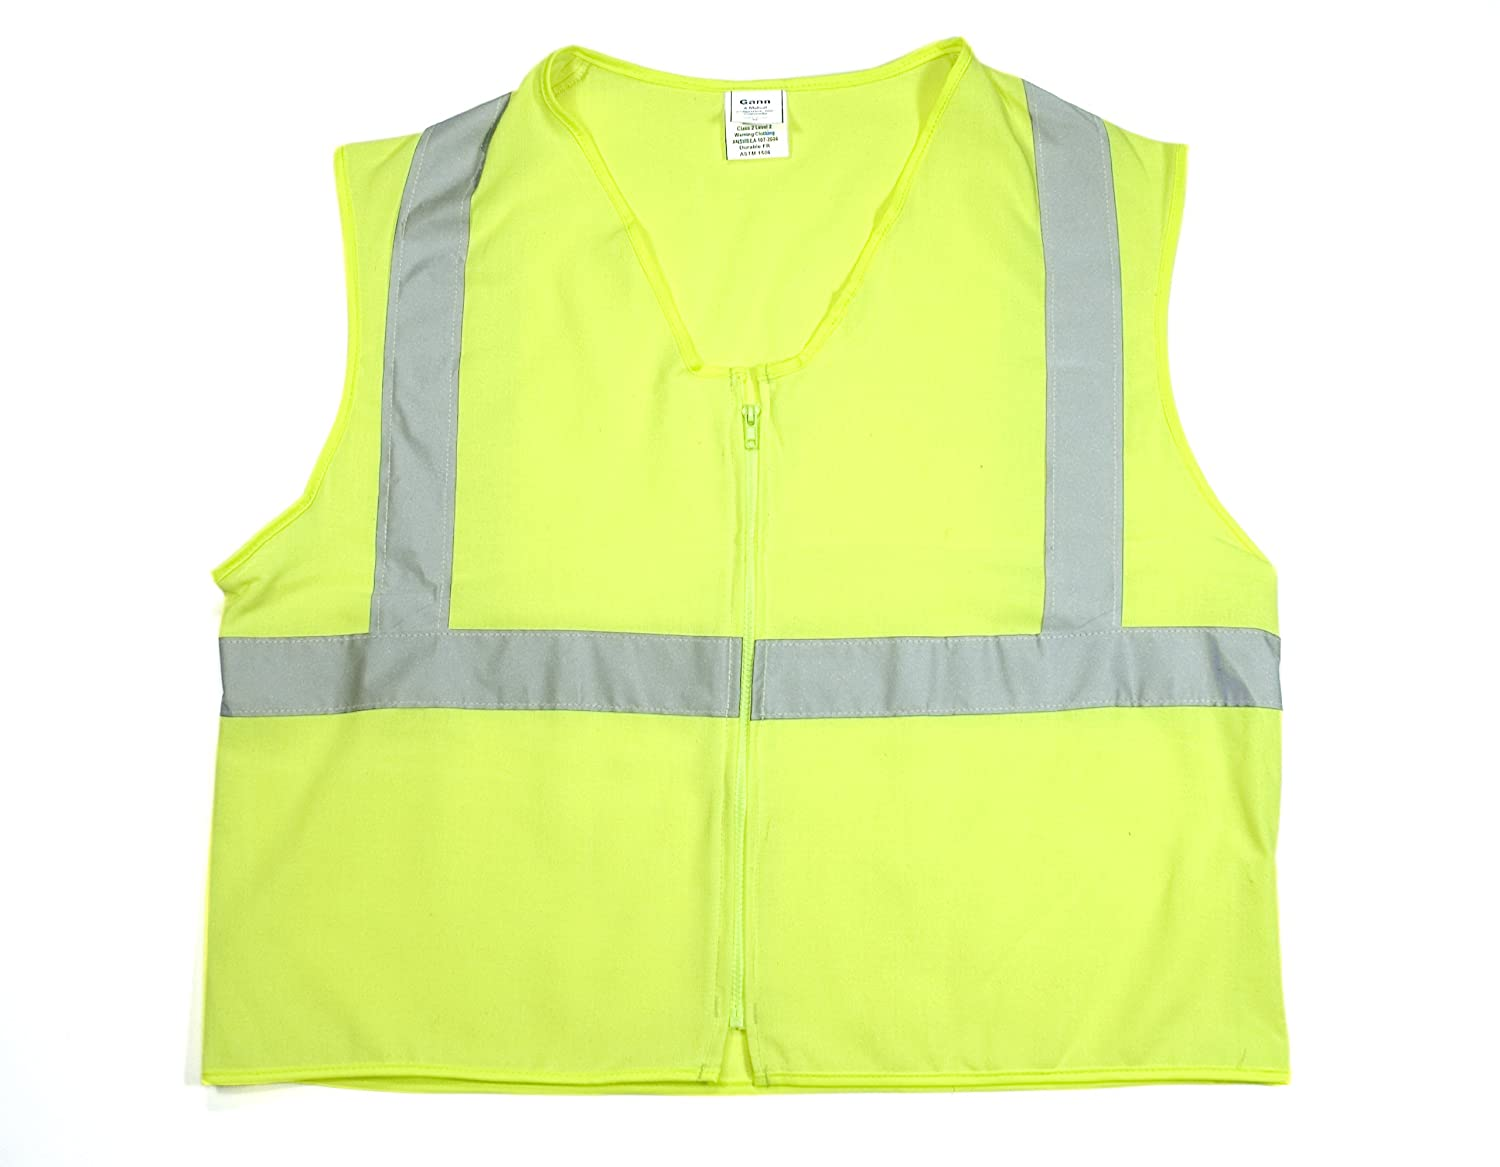 Mutual 16334 High Visibility Polyester ANSI Class 2 Deluxe DOT Safety Vest Vest with Pockets, X-Large, Lime by Mutual Industries B00C2B2Y54